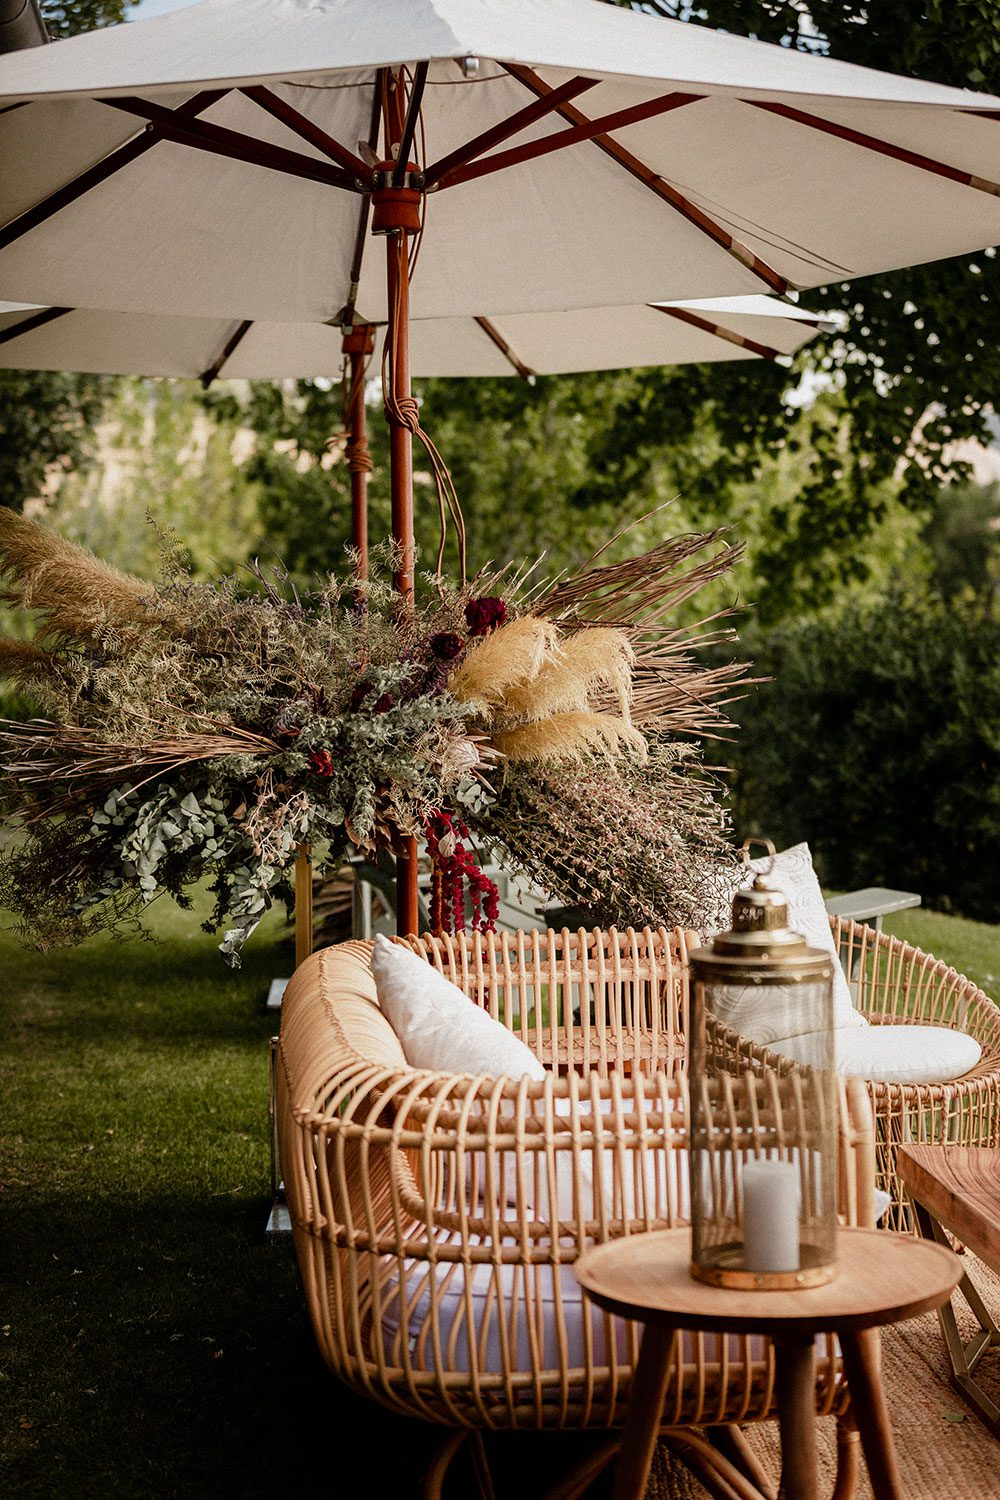 Emore and Hamish - Rusitc outdoor seat and garland